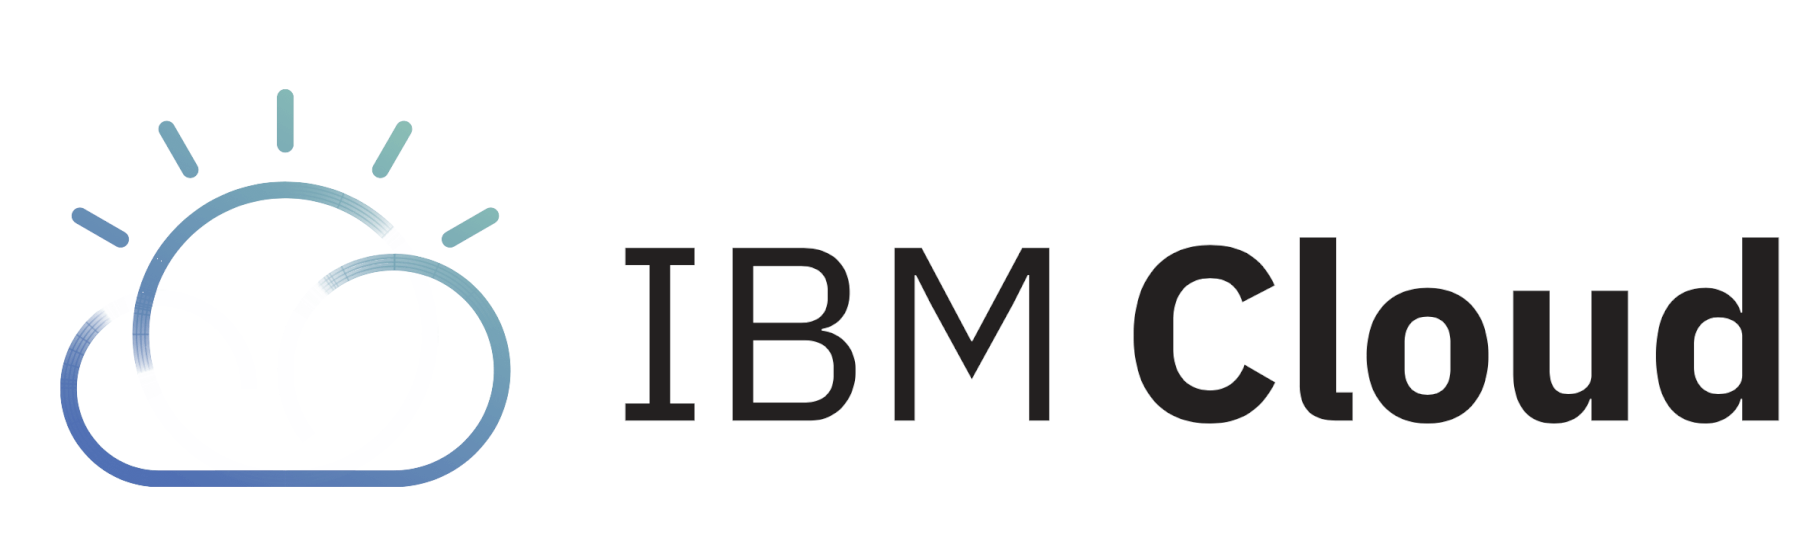 IBM cloud logo big